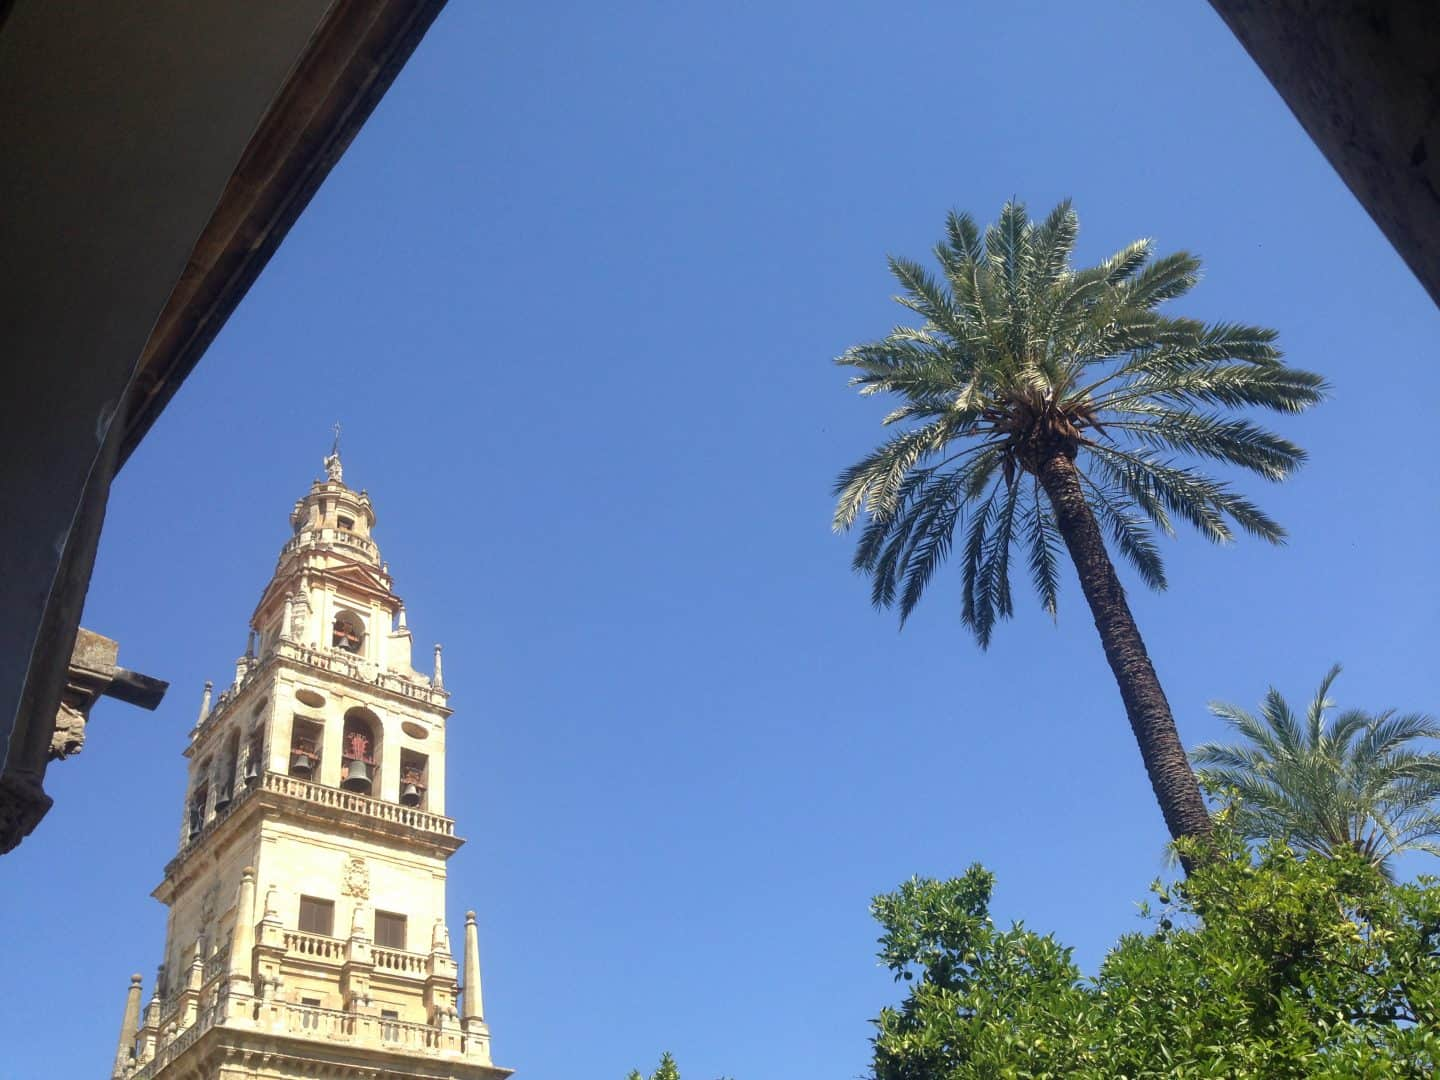 Angled view from the Mosque in Cordoba